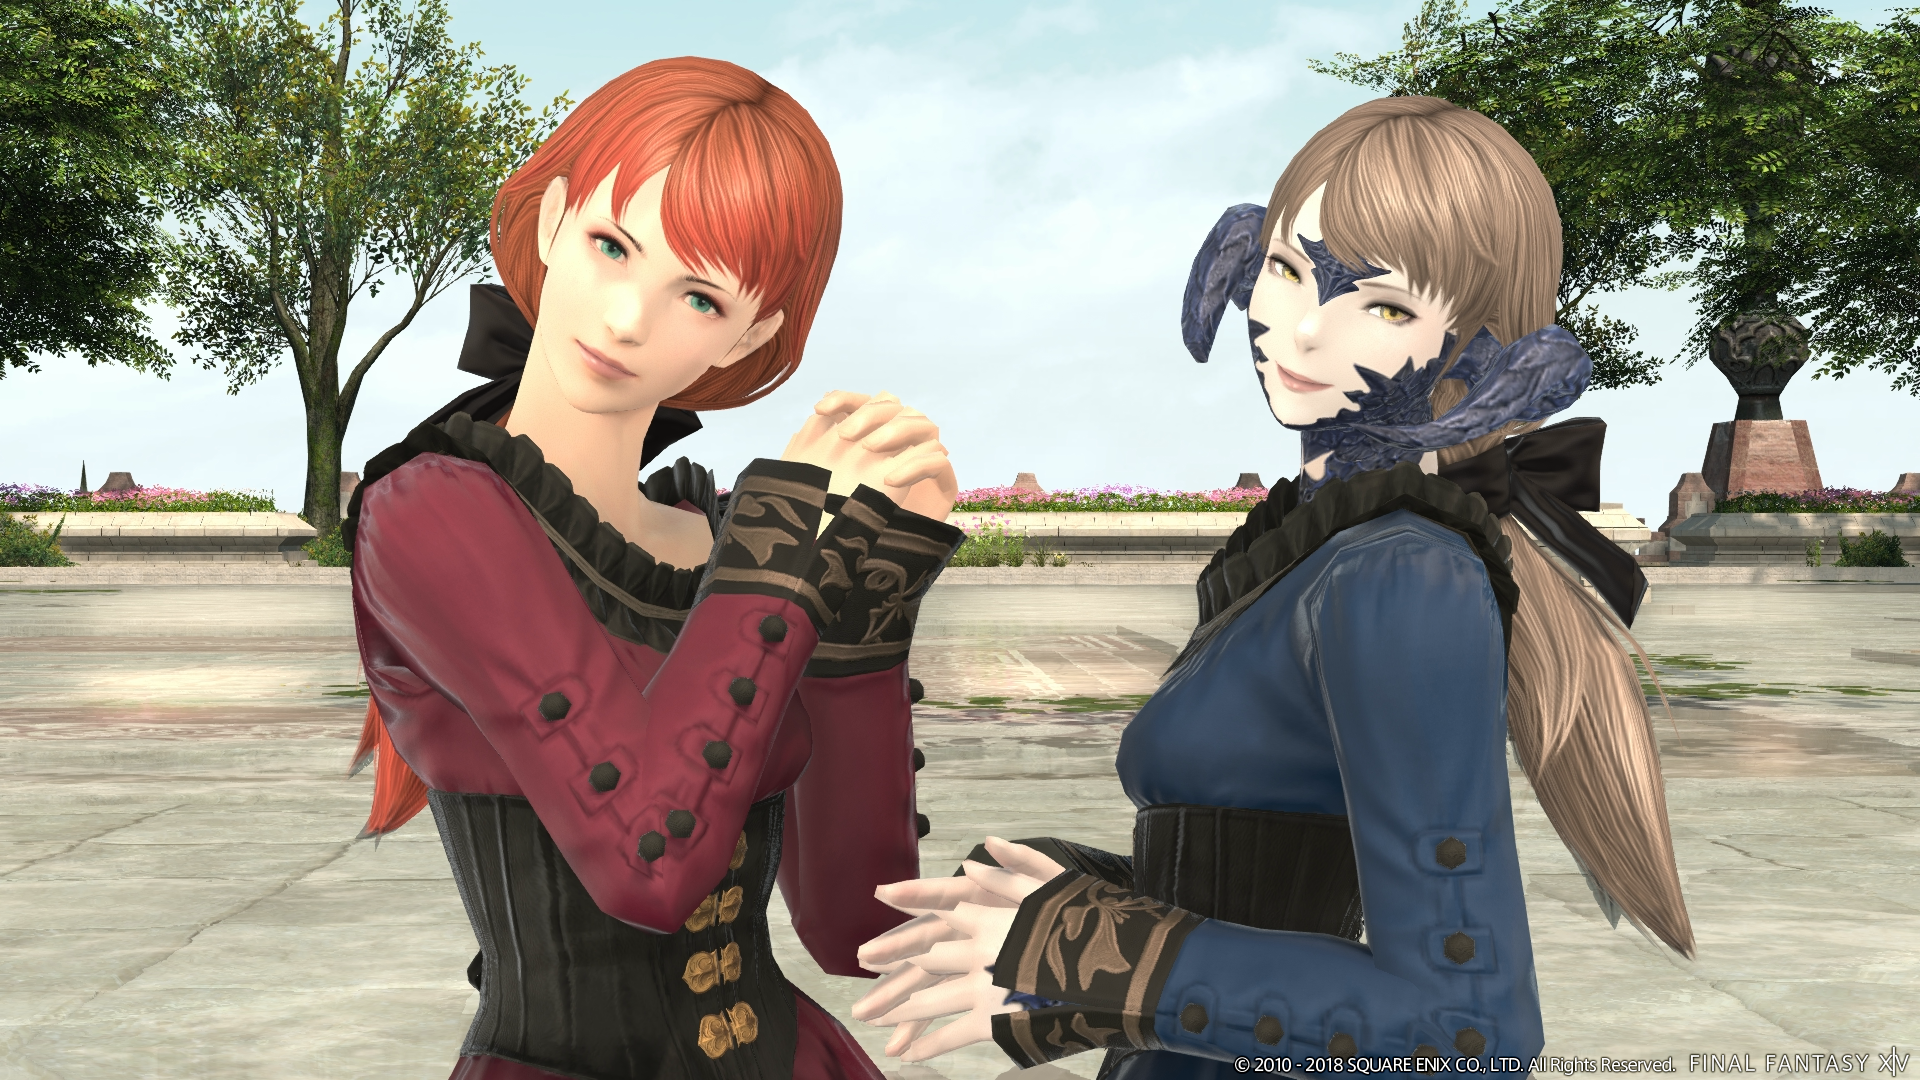 Final Fantasy Xiv Details More On Patch 4 5 A Requiem For